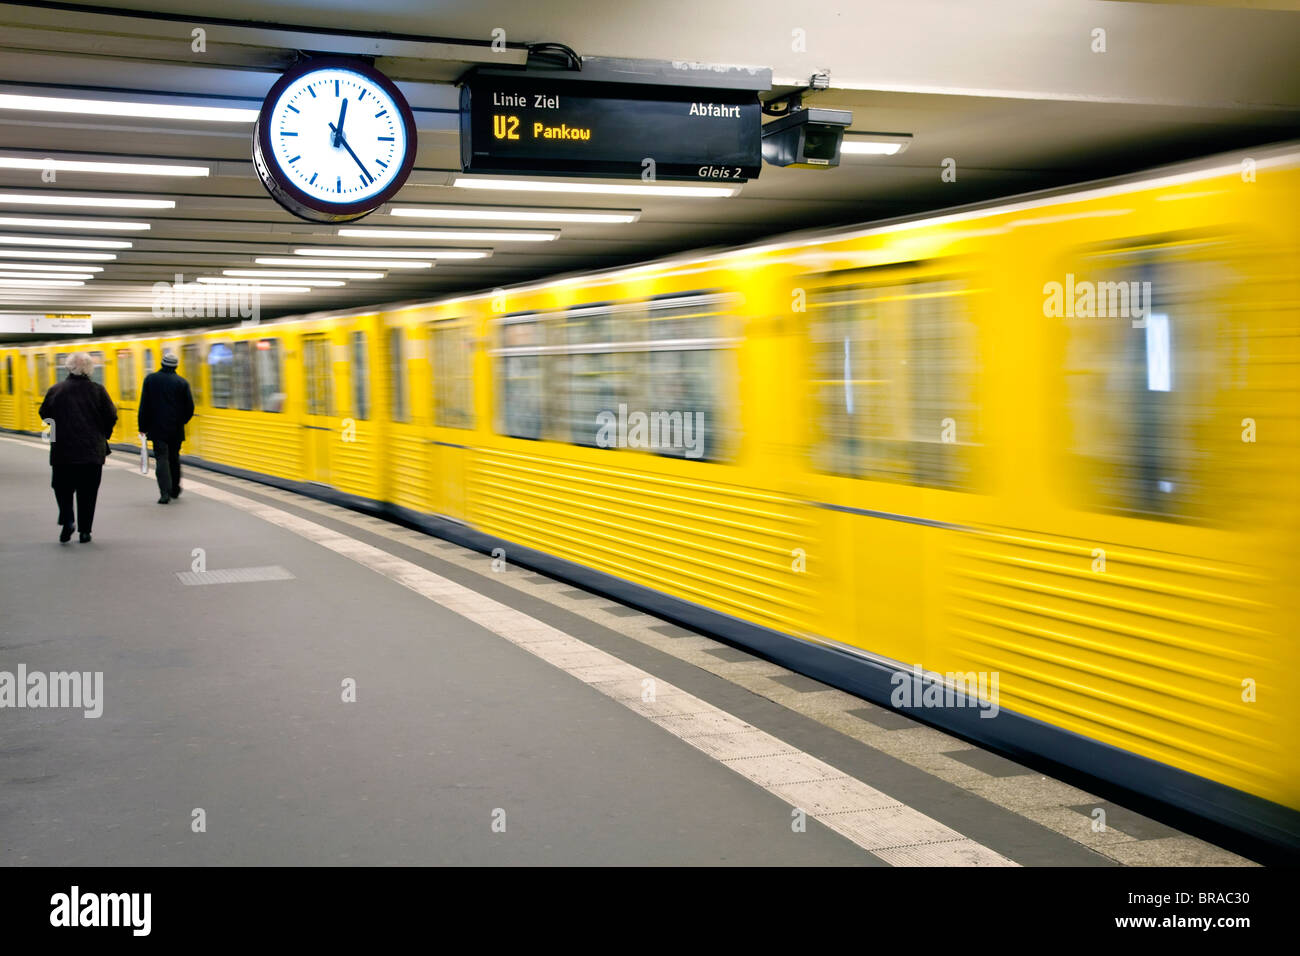 Moving train pulling into modern subway station, Berlin, Germany, Europe - Stock Image